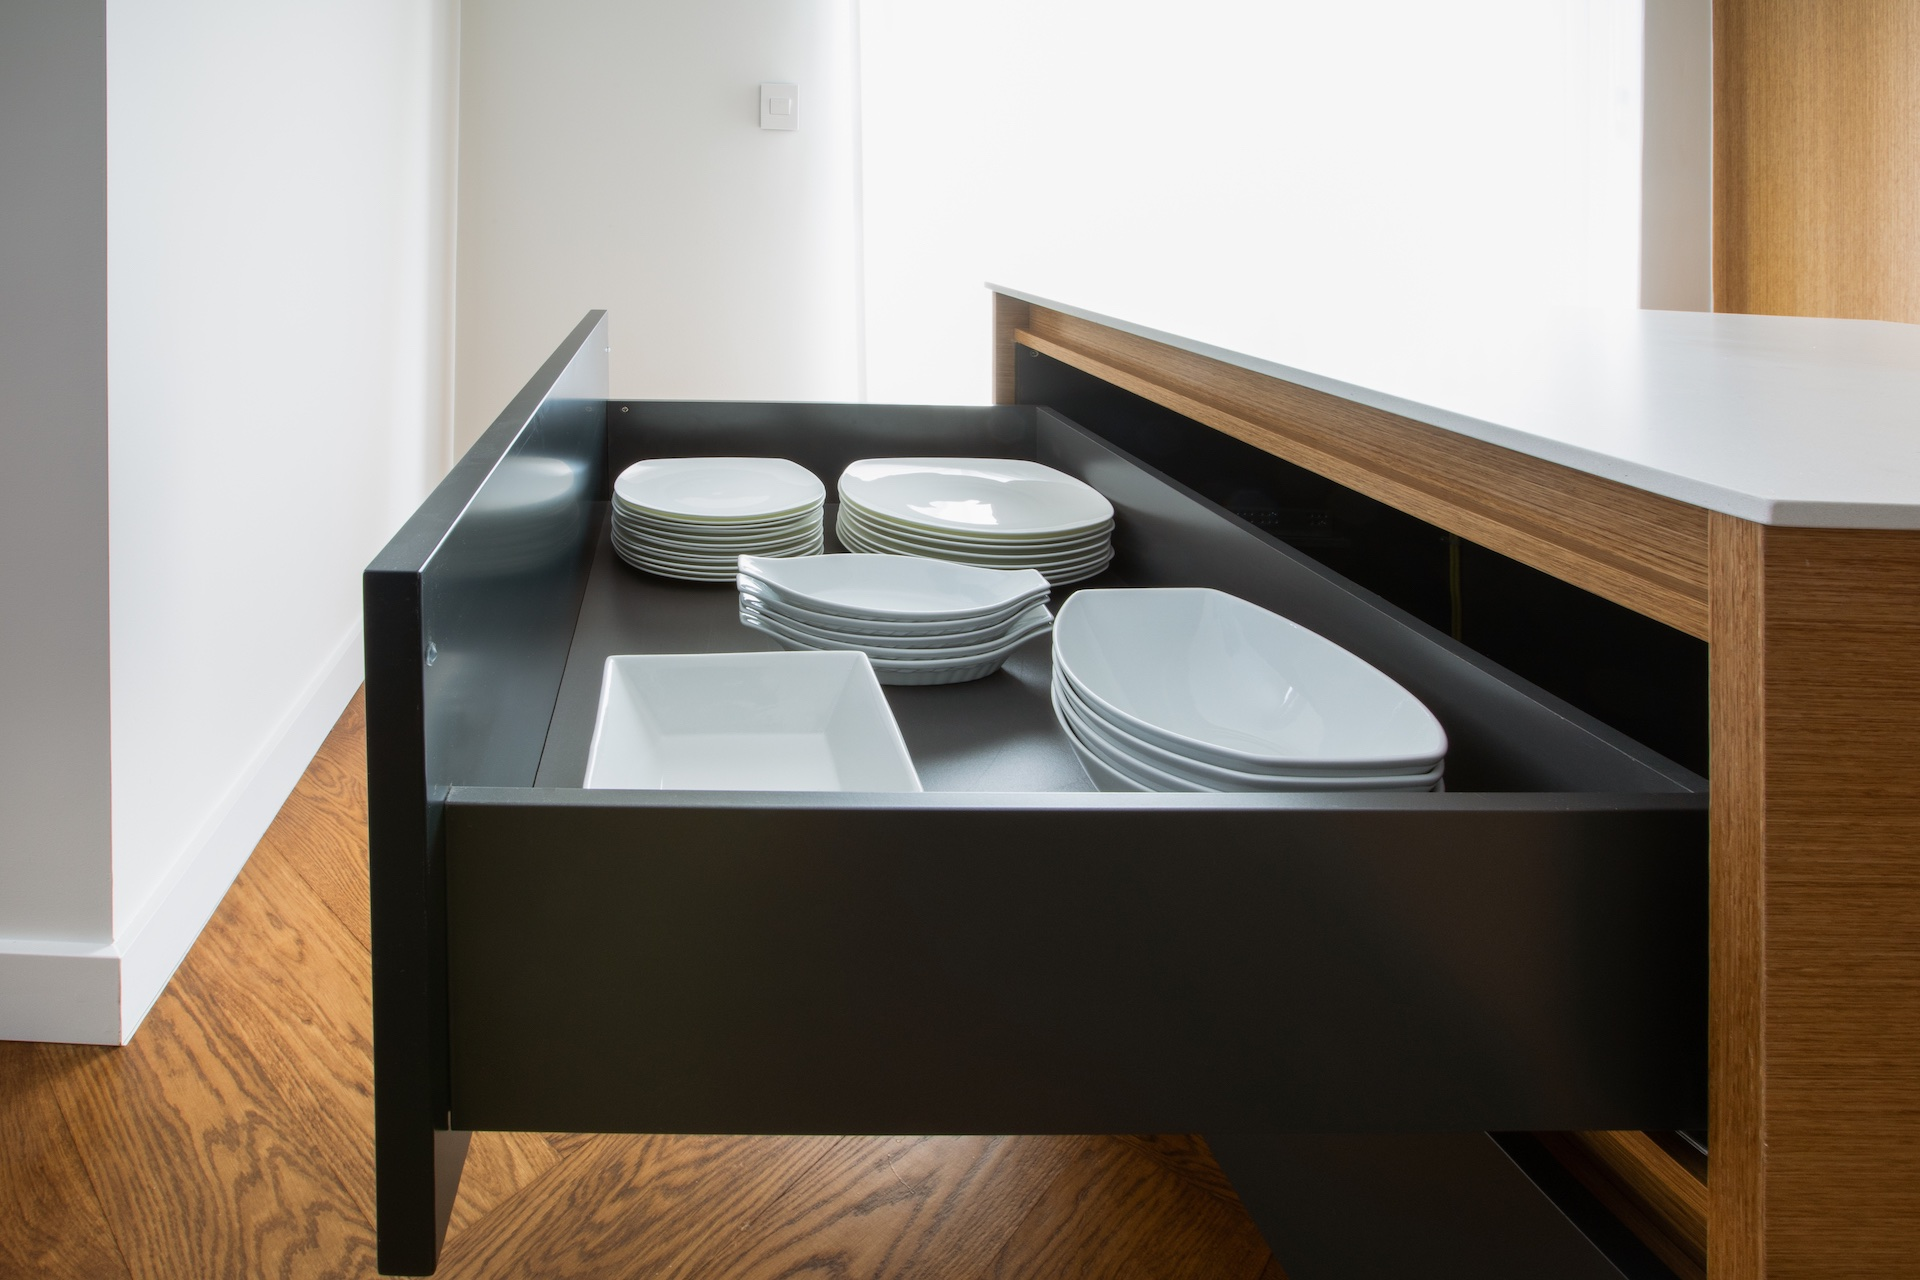 NIICO Drawer with plates